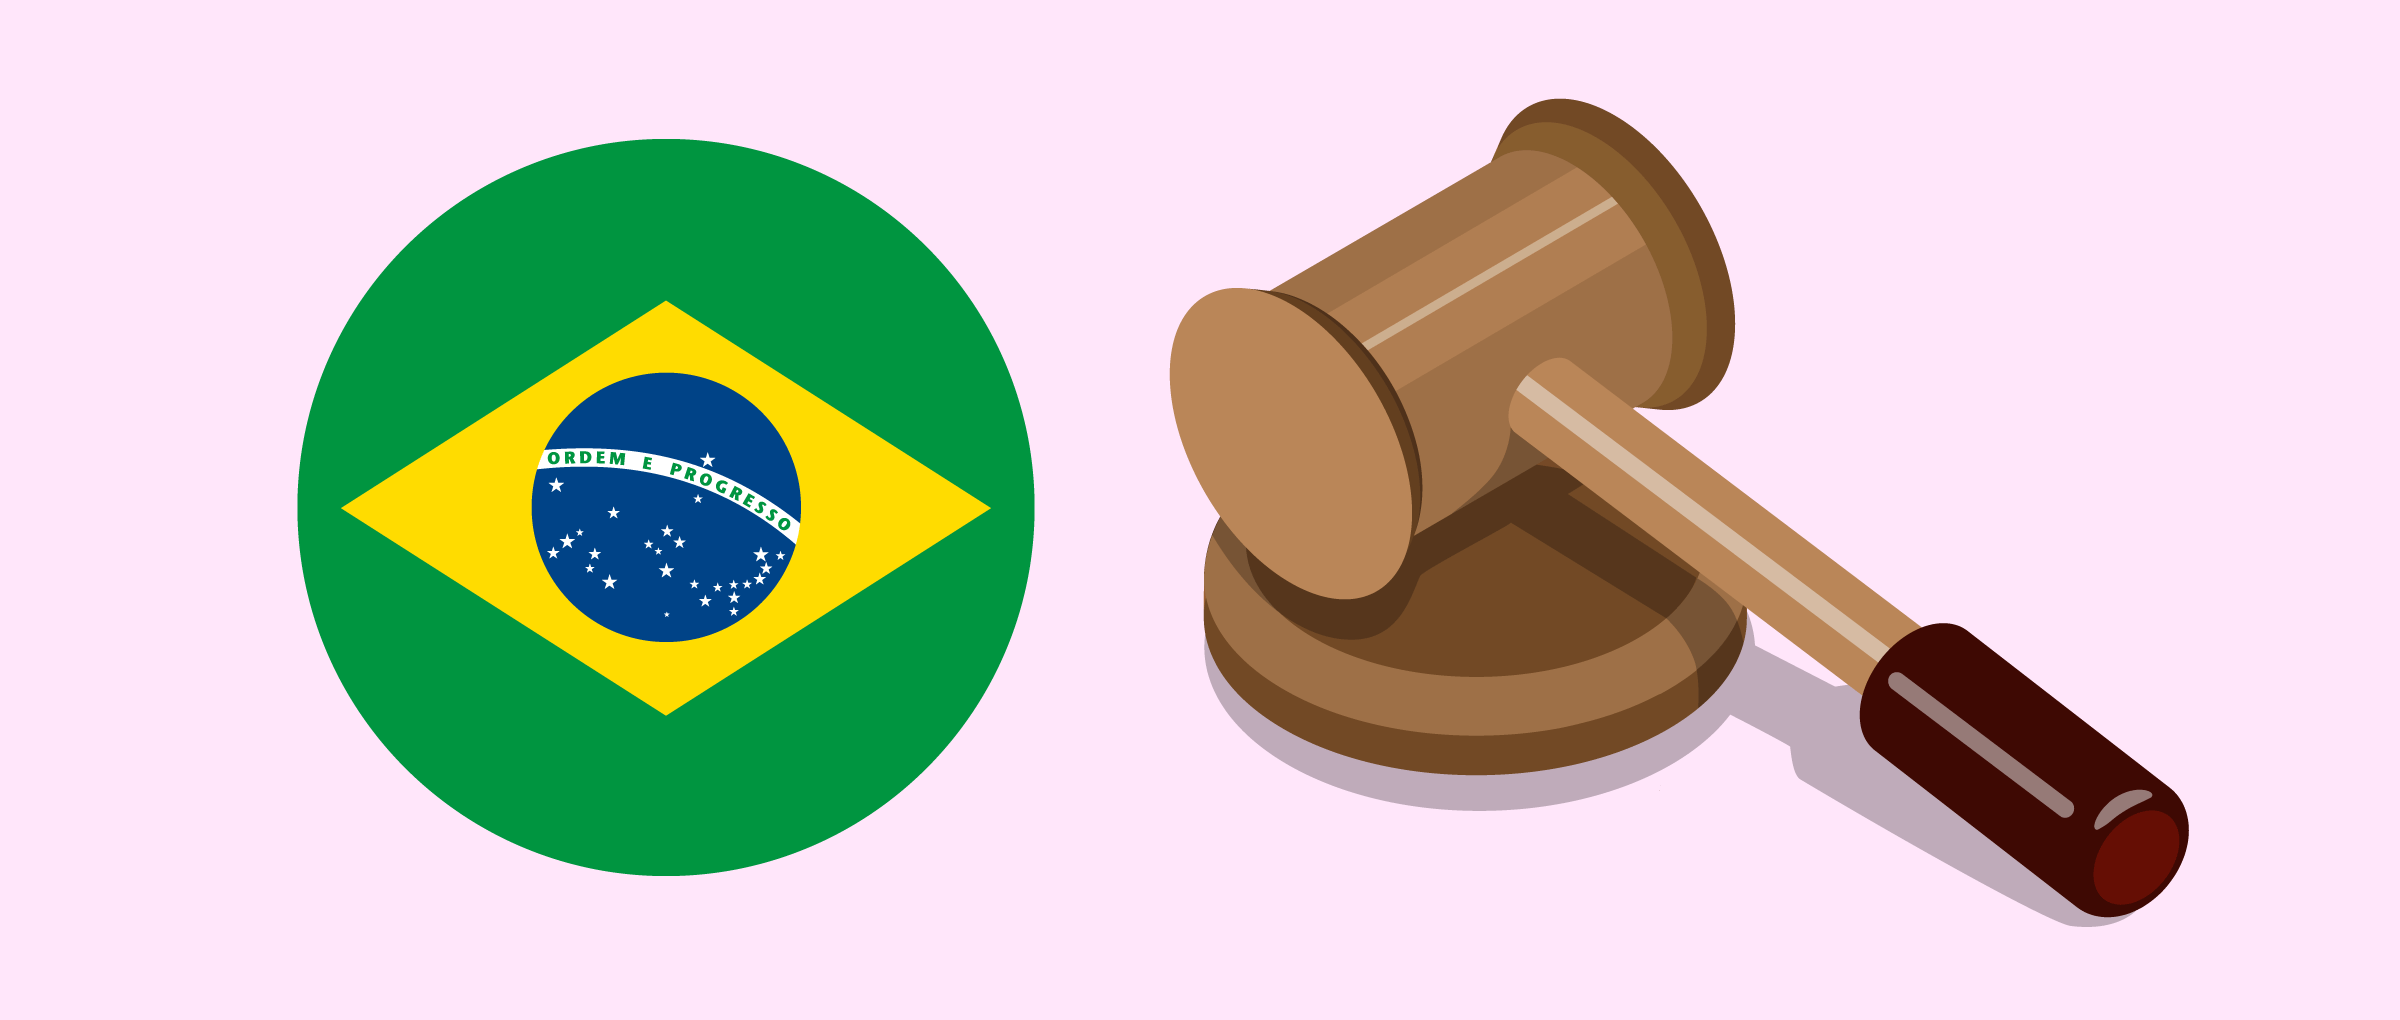 Court sentence for filiation in Brazil